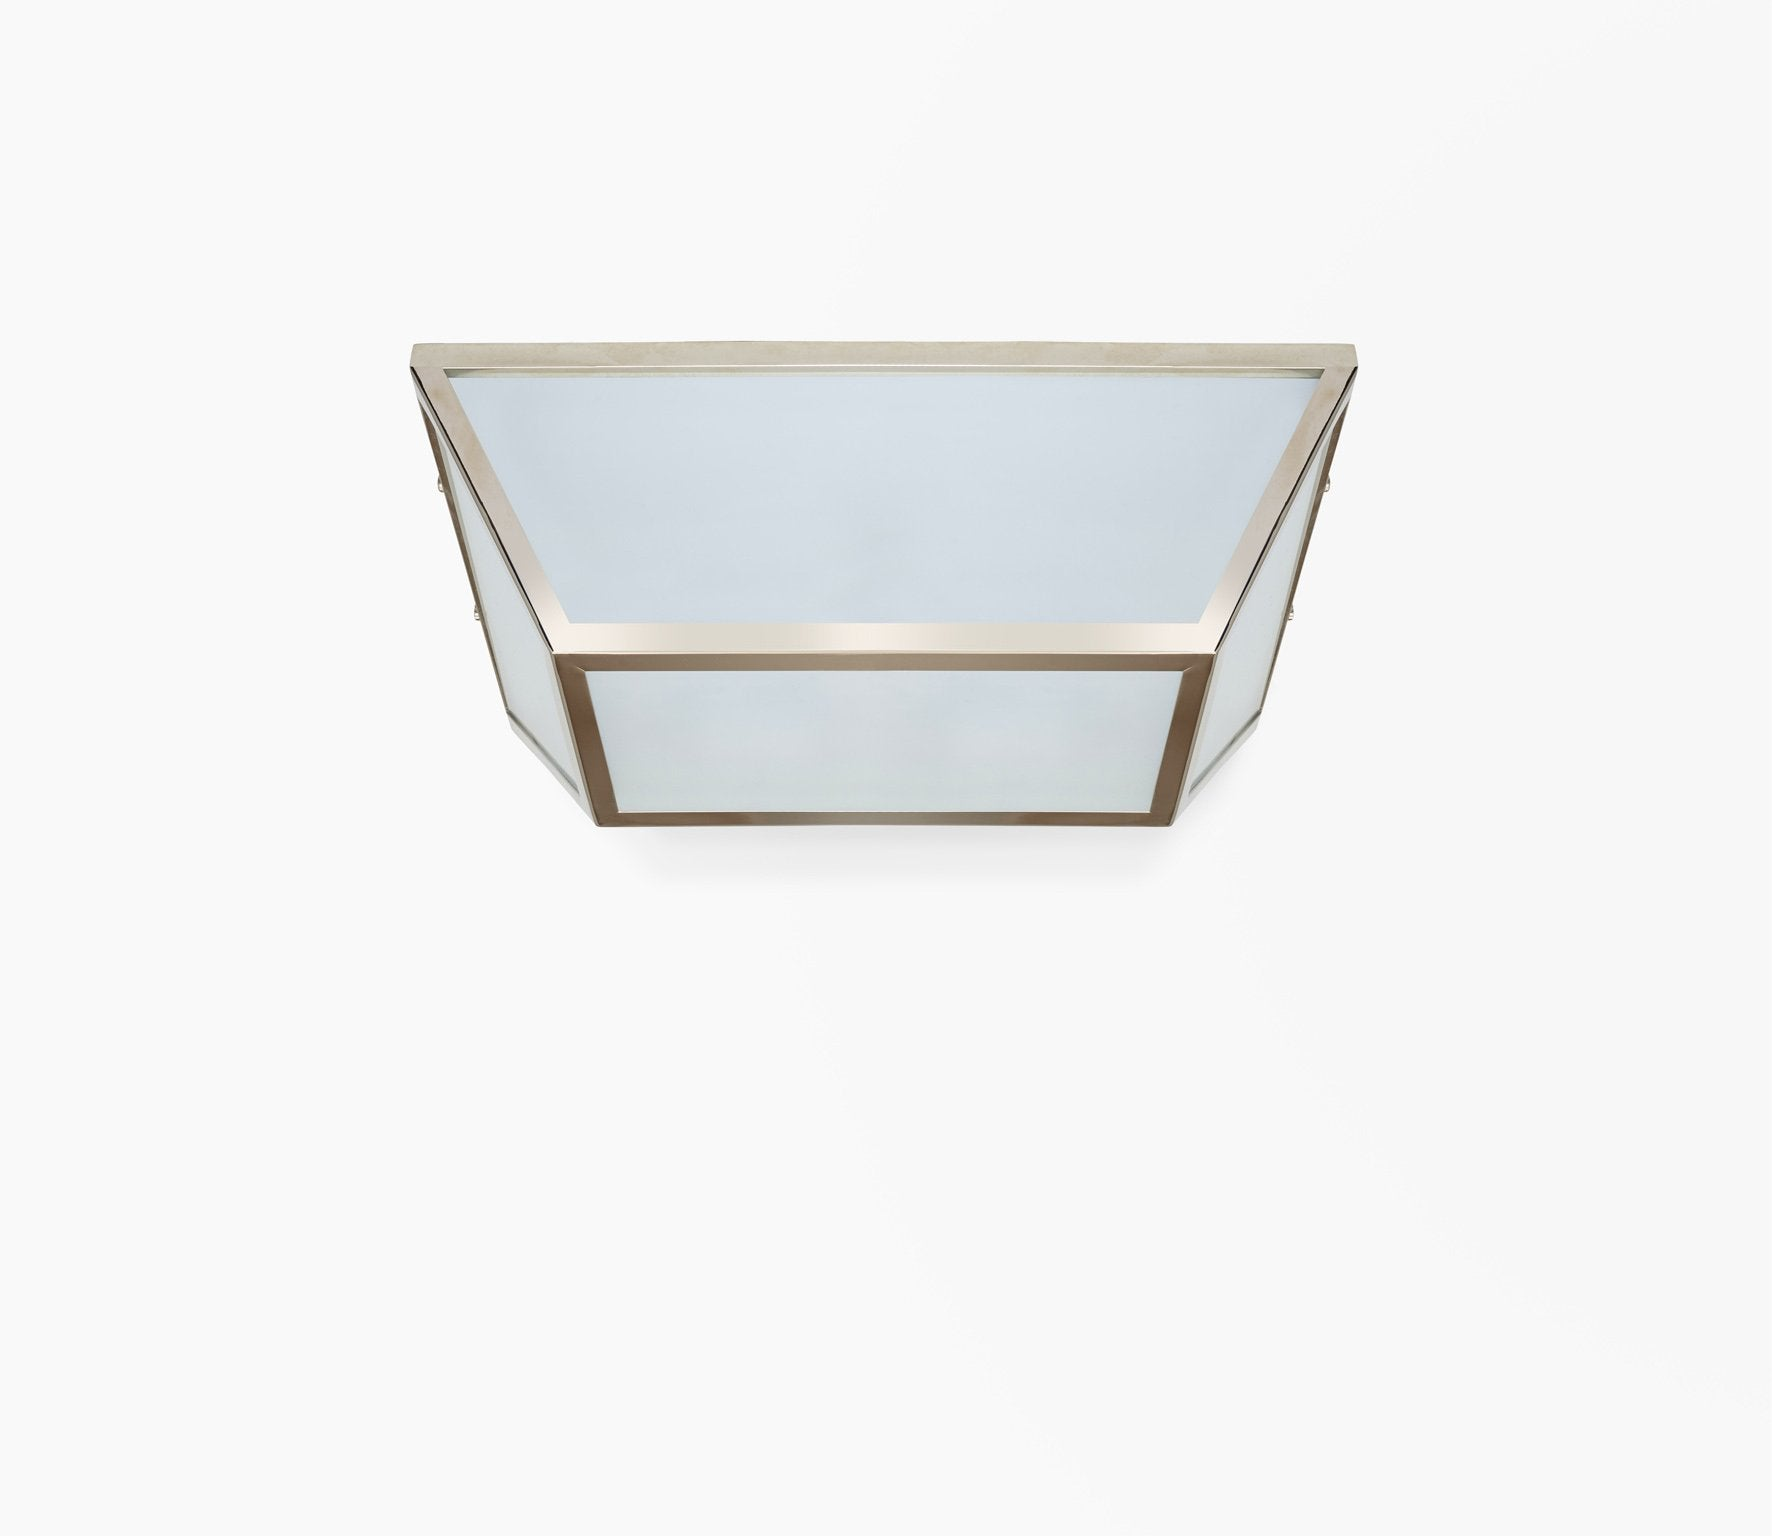 Strand Ceiling Light Product Image 5